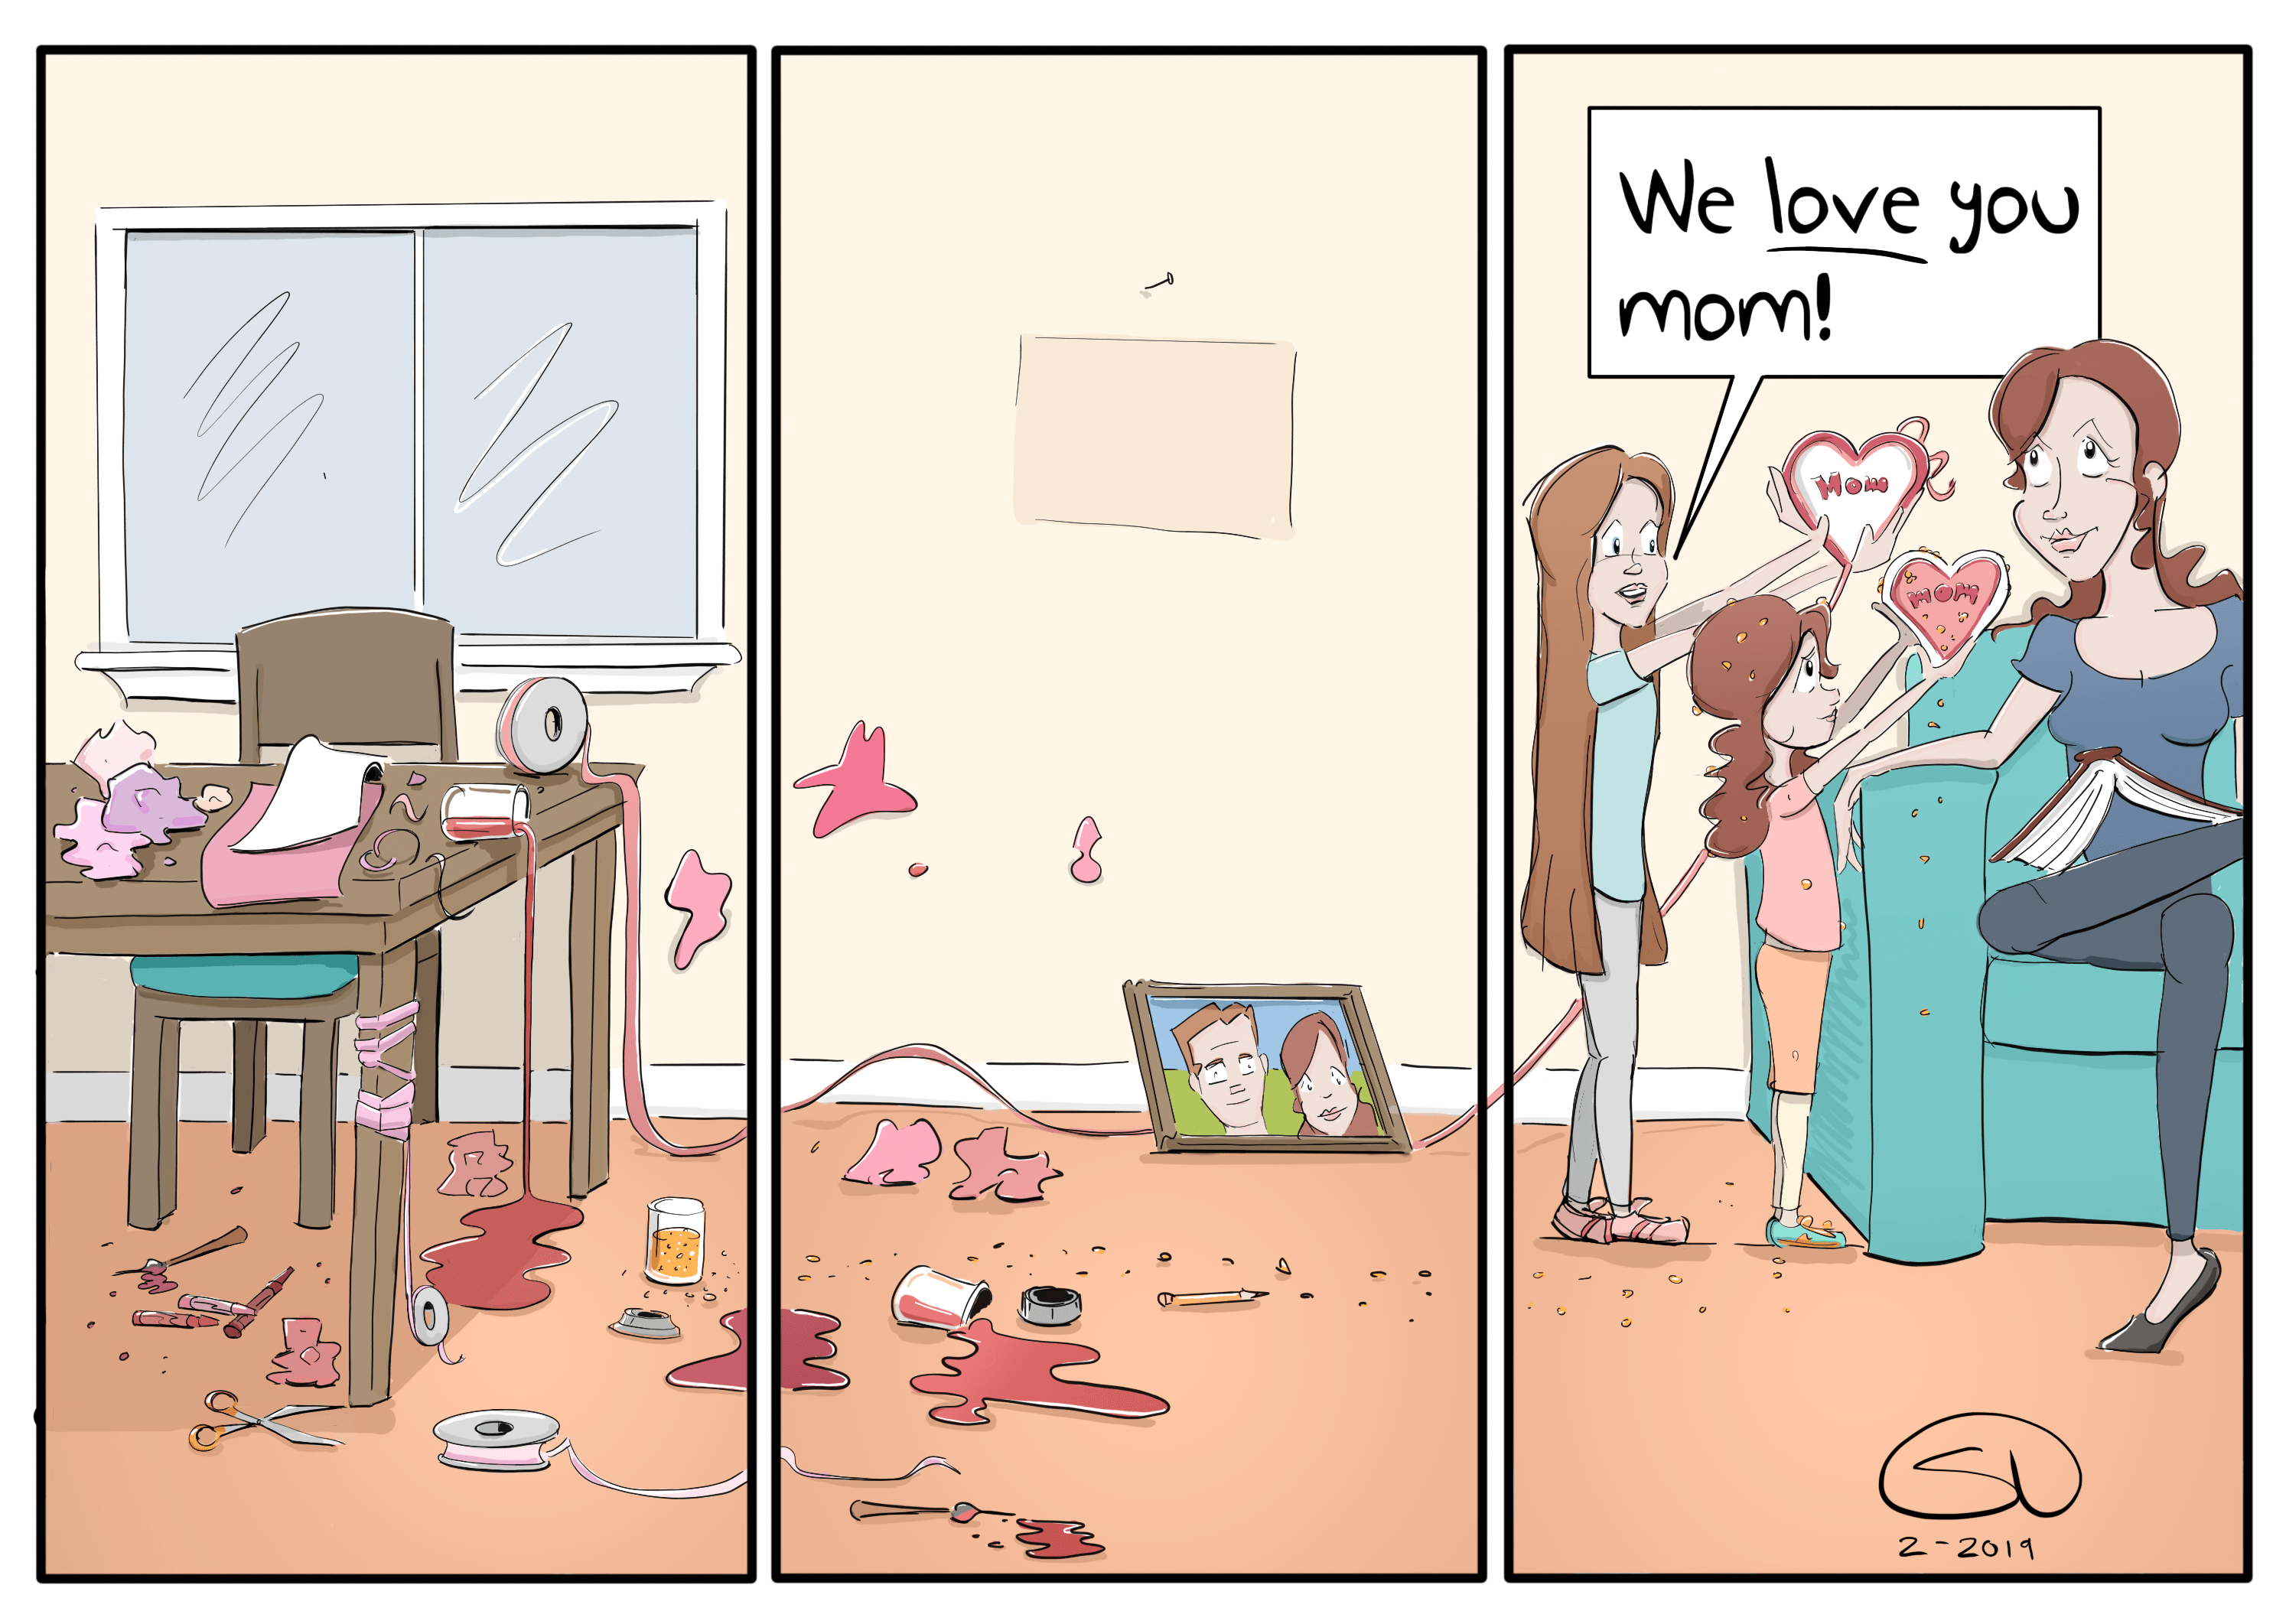 love is messy valentines day card kids comic